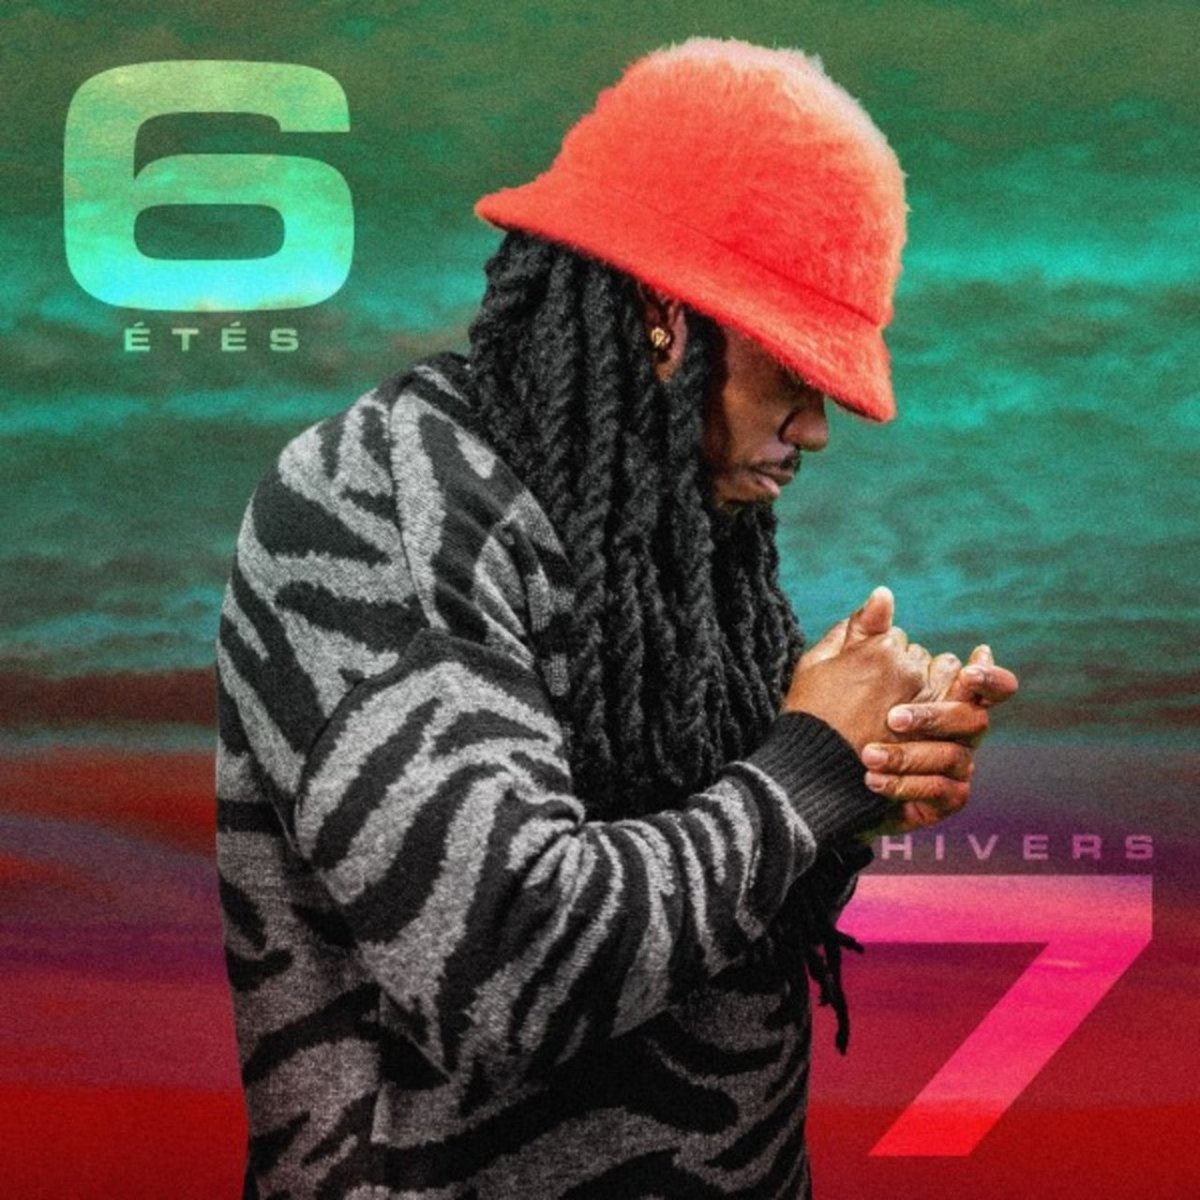 Young Chang MC - 6 Étes 7 Hivers (Cover)